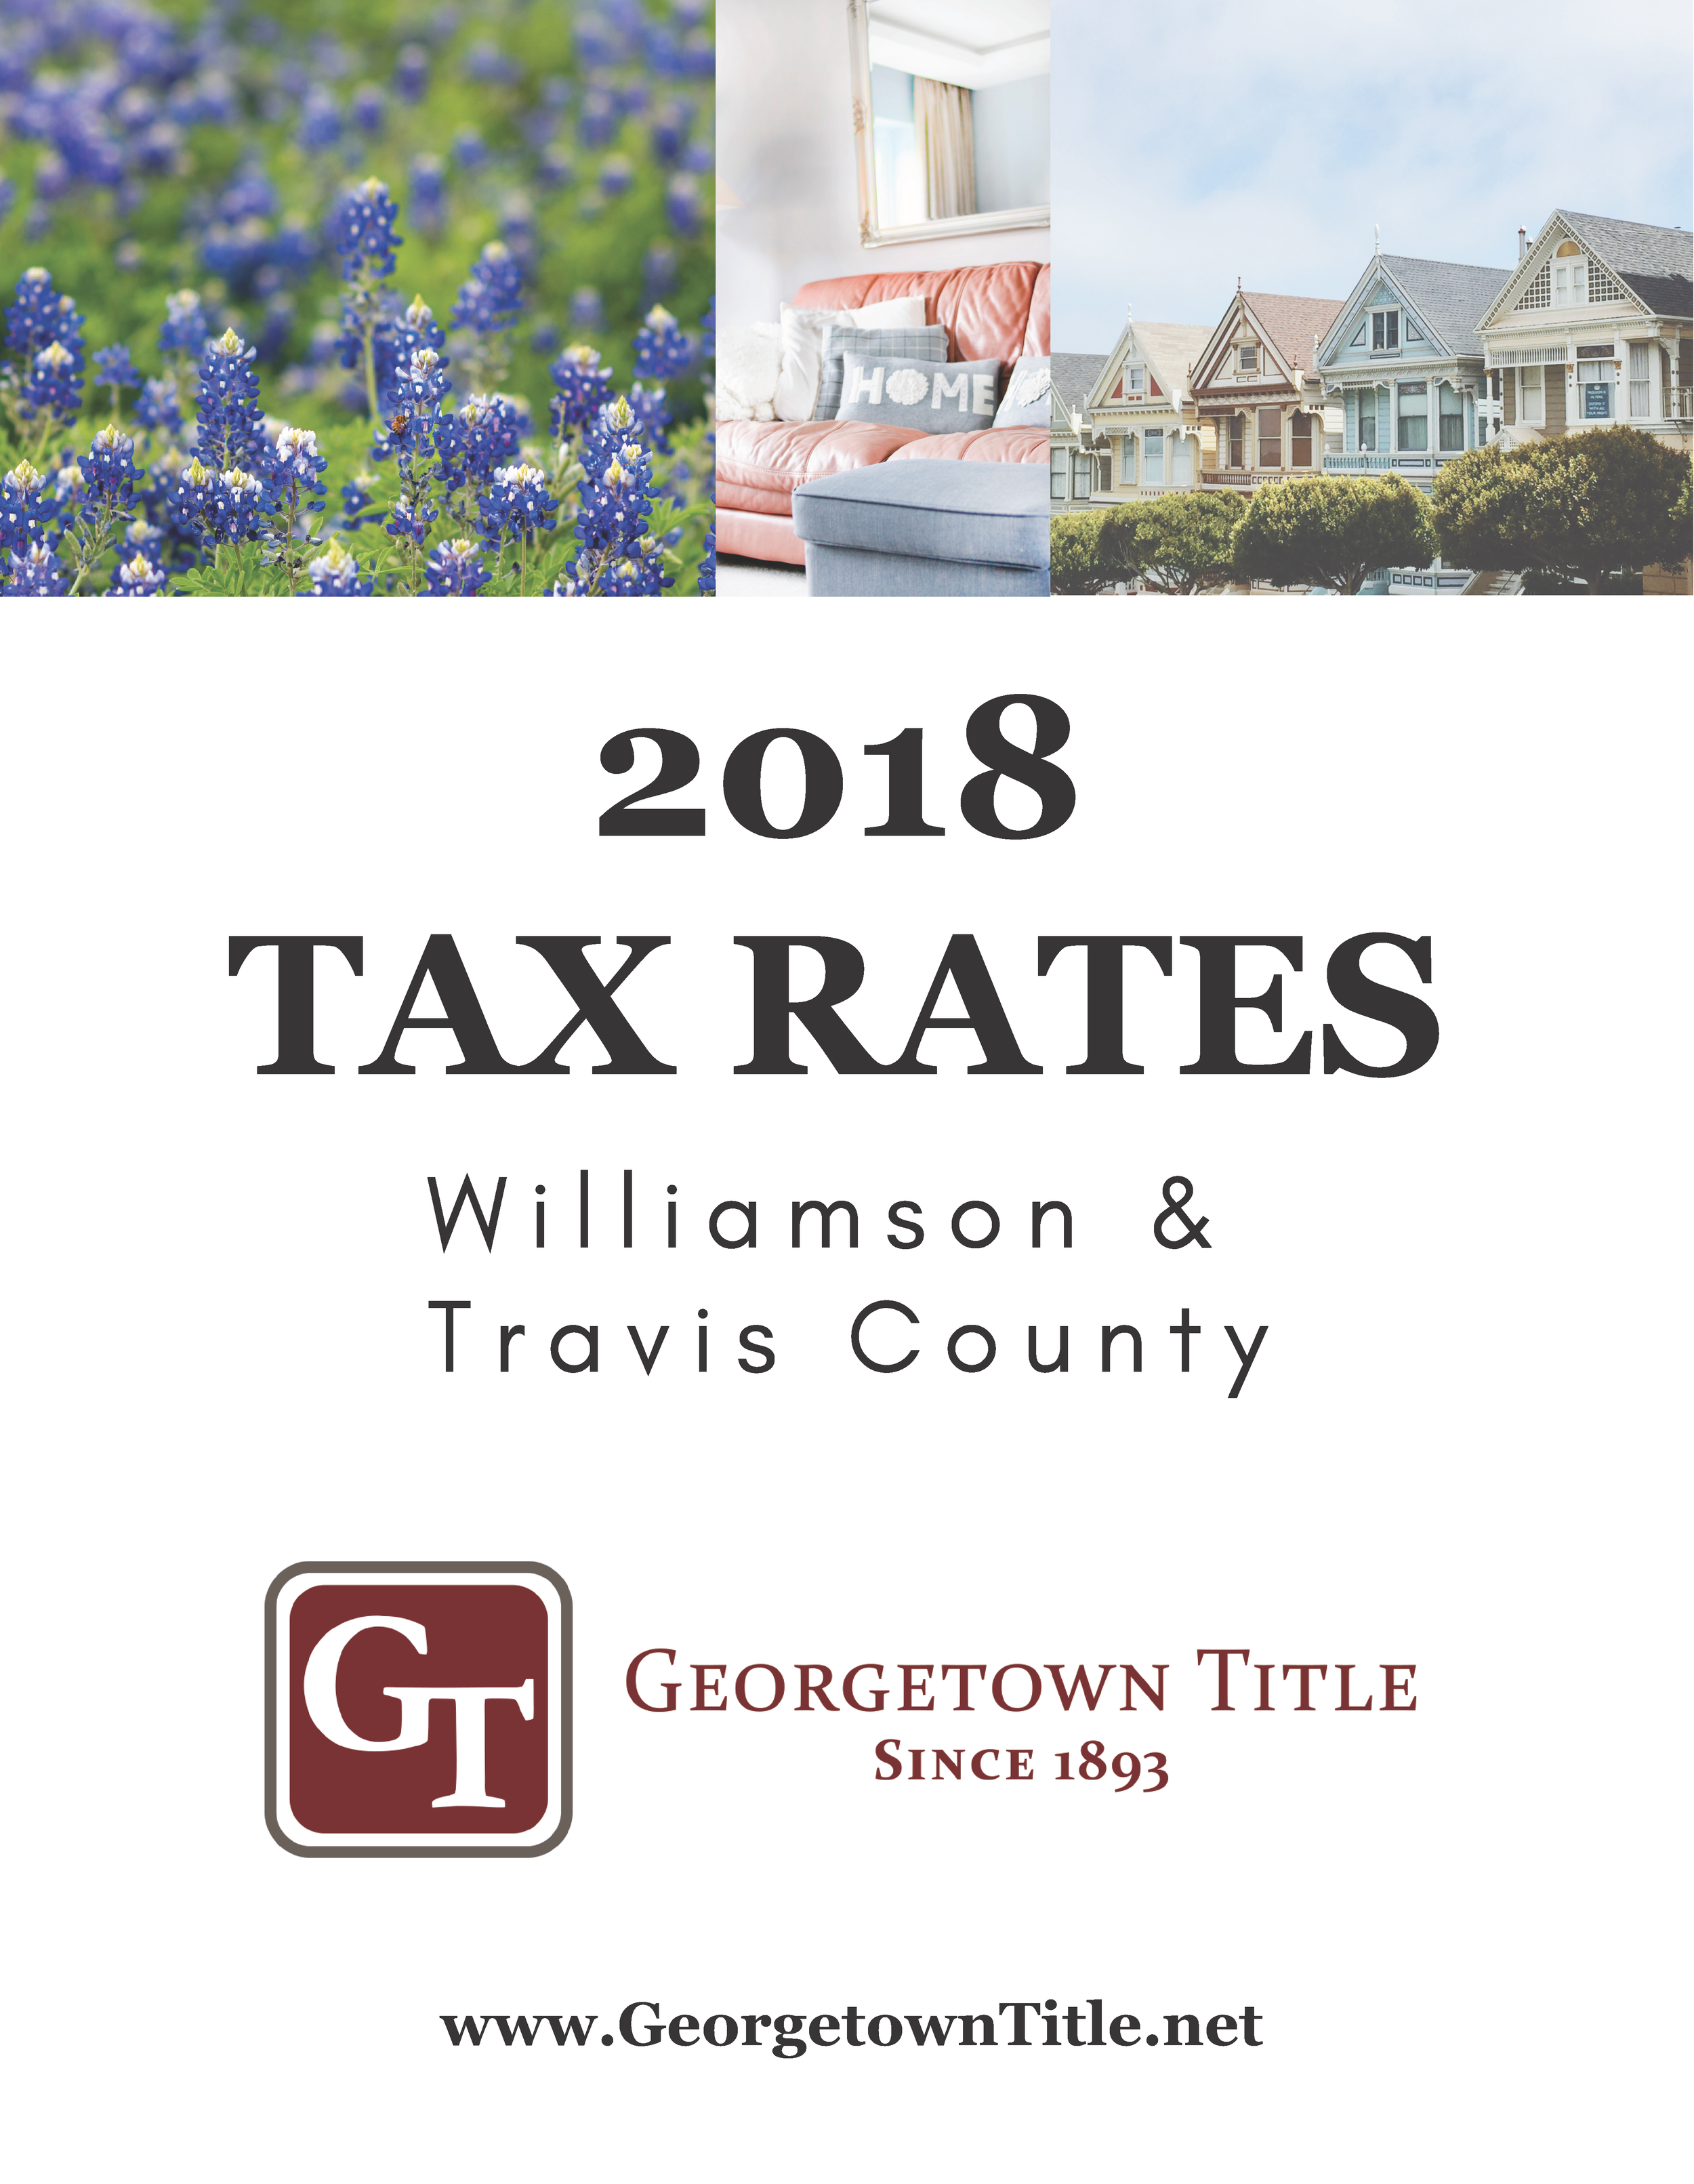 Print Ready 2018 Tax Rates_Page_1.png